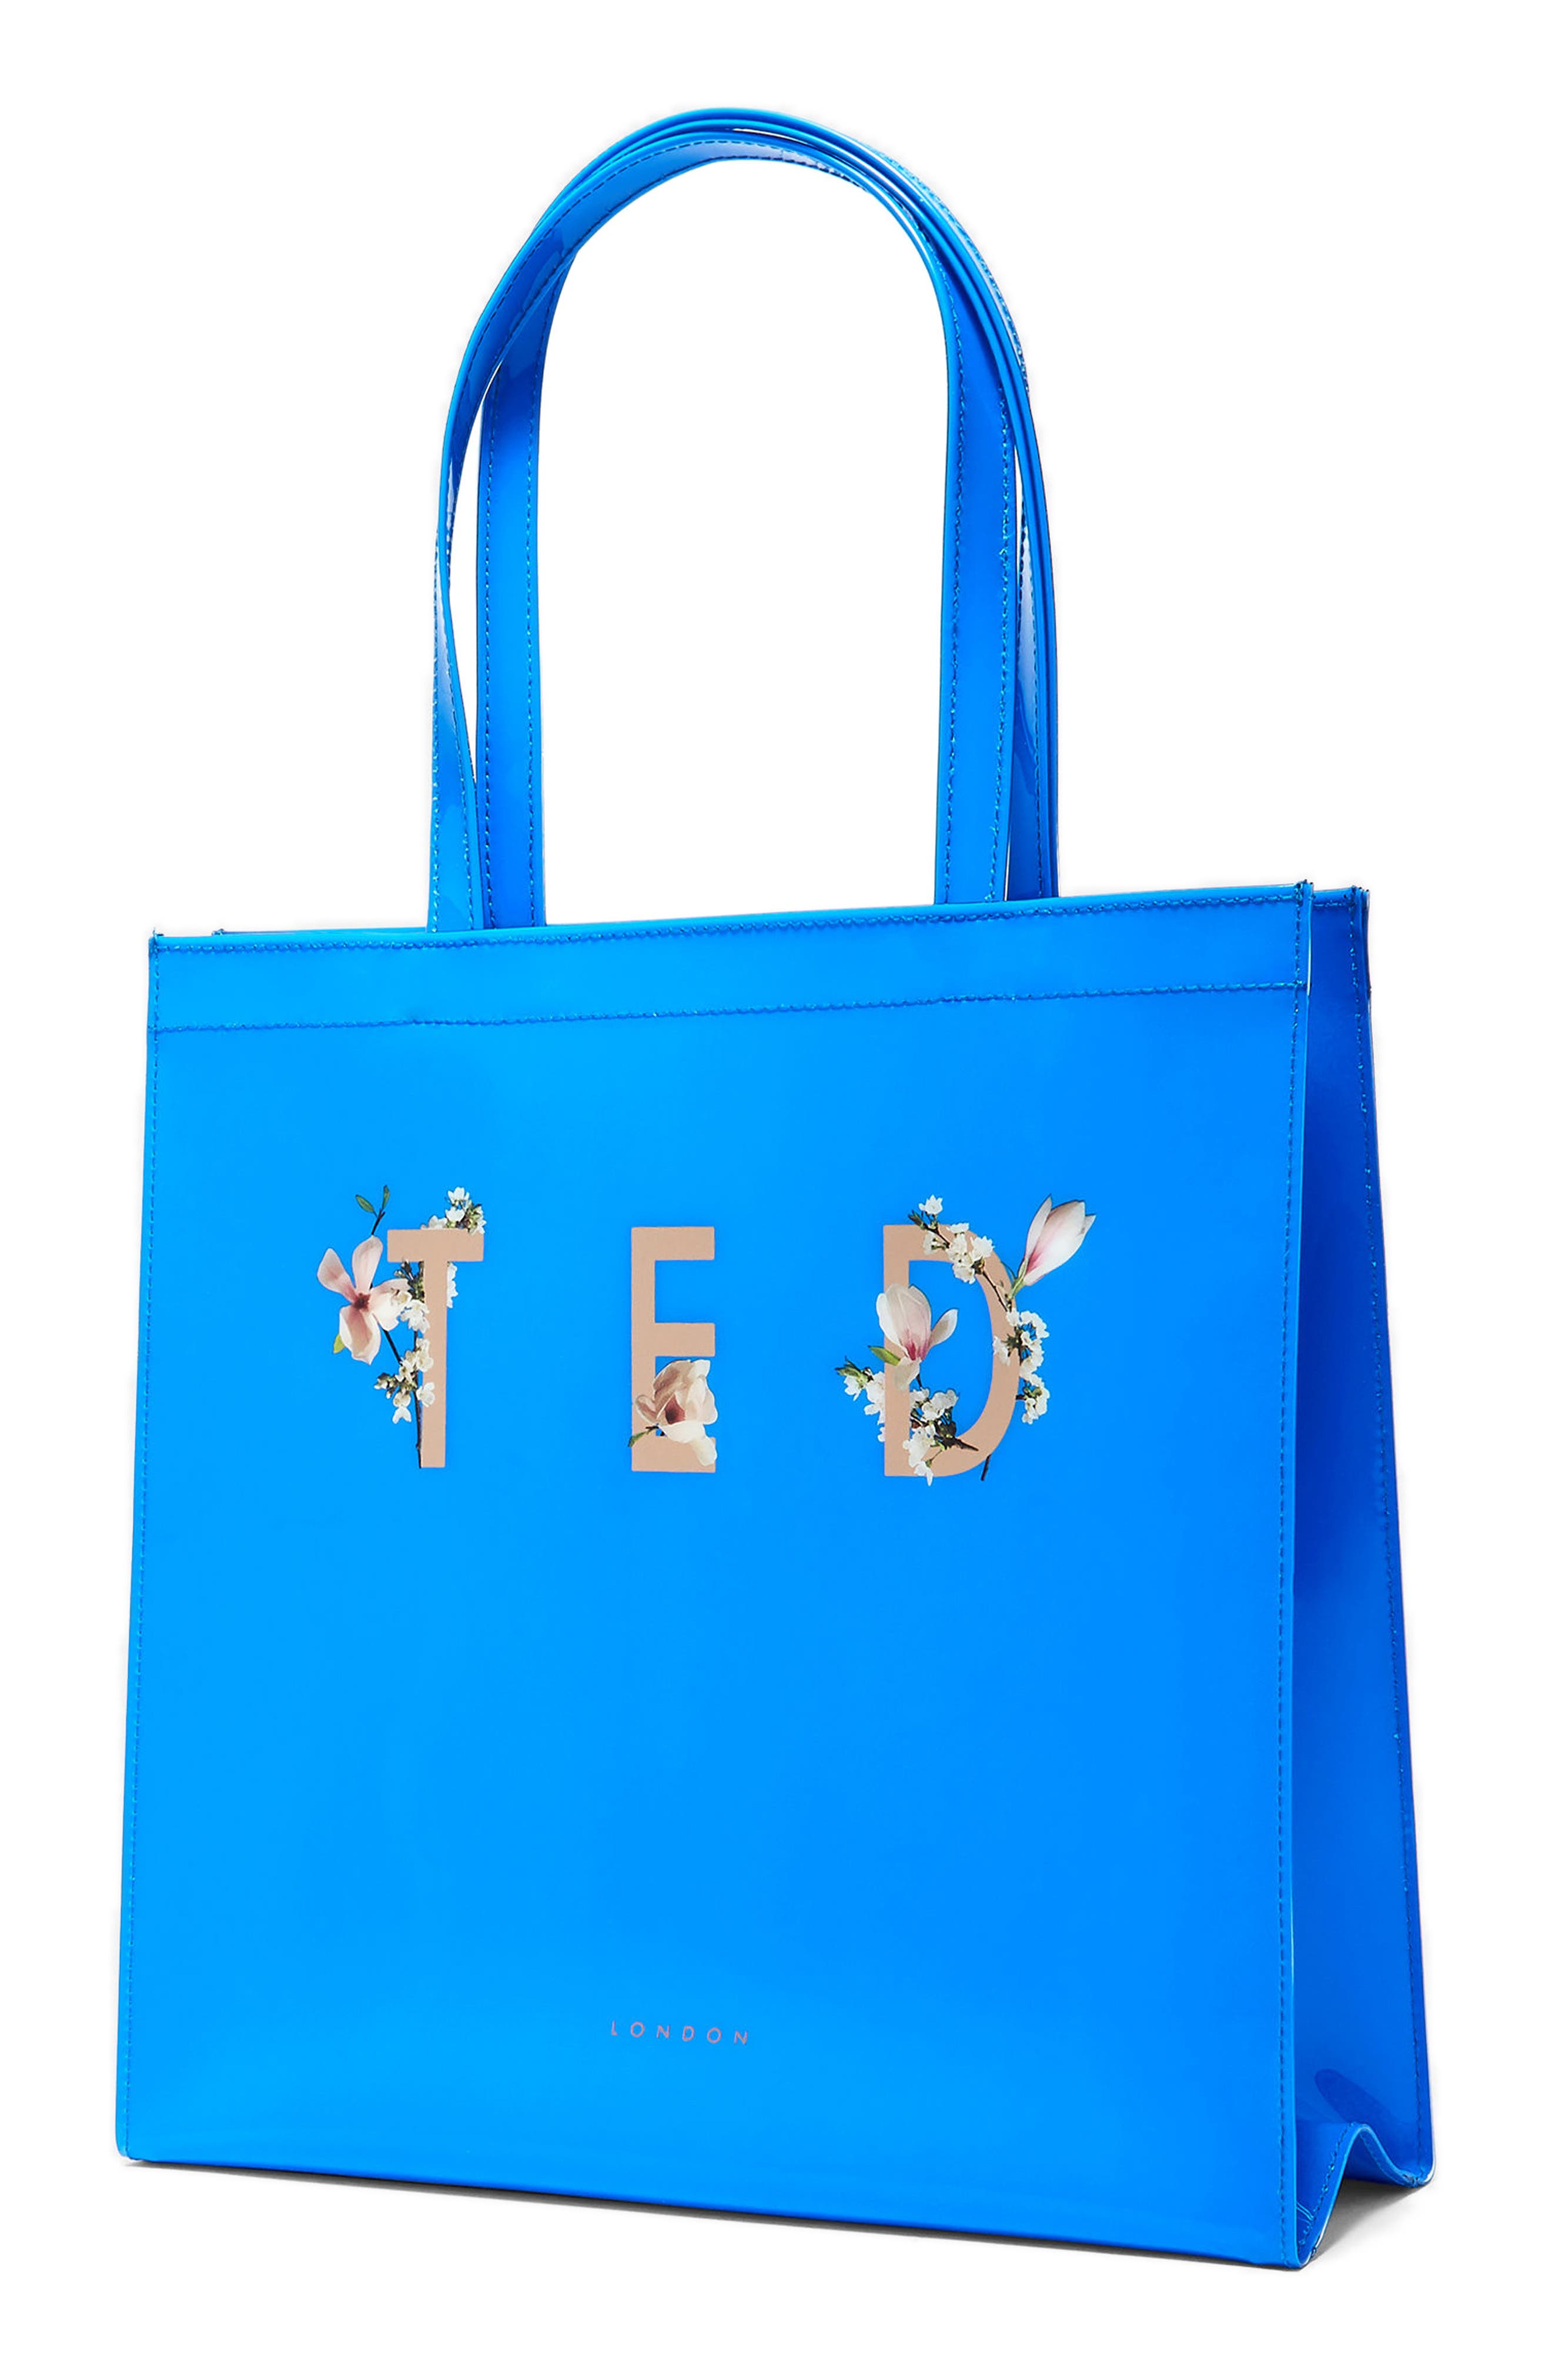 Theacon Large Icon Tote,                             Alternate thumbnail 3, color,                             Bright Blue